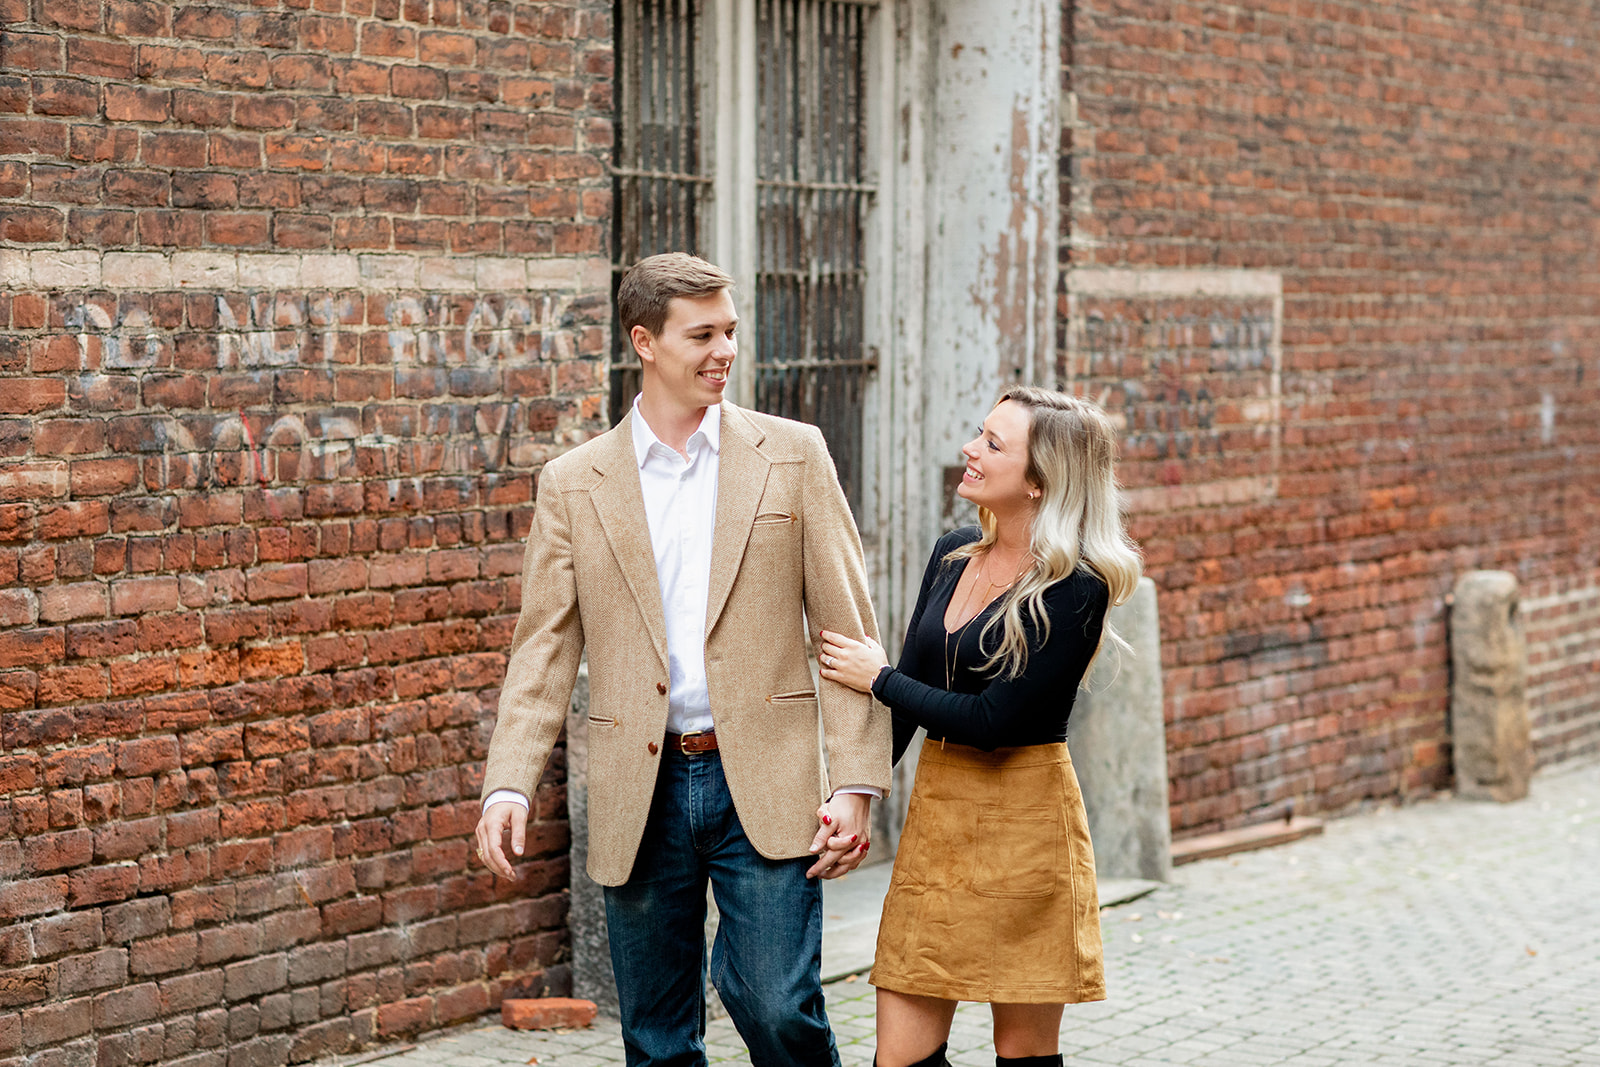 Ally  Austins Maymont and Tobacco Company Engagement Shoot - Image Property of www.j-dphoto.com